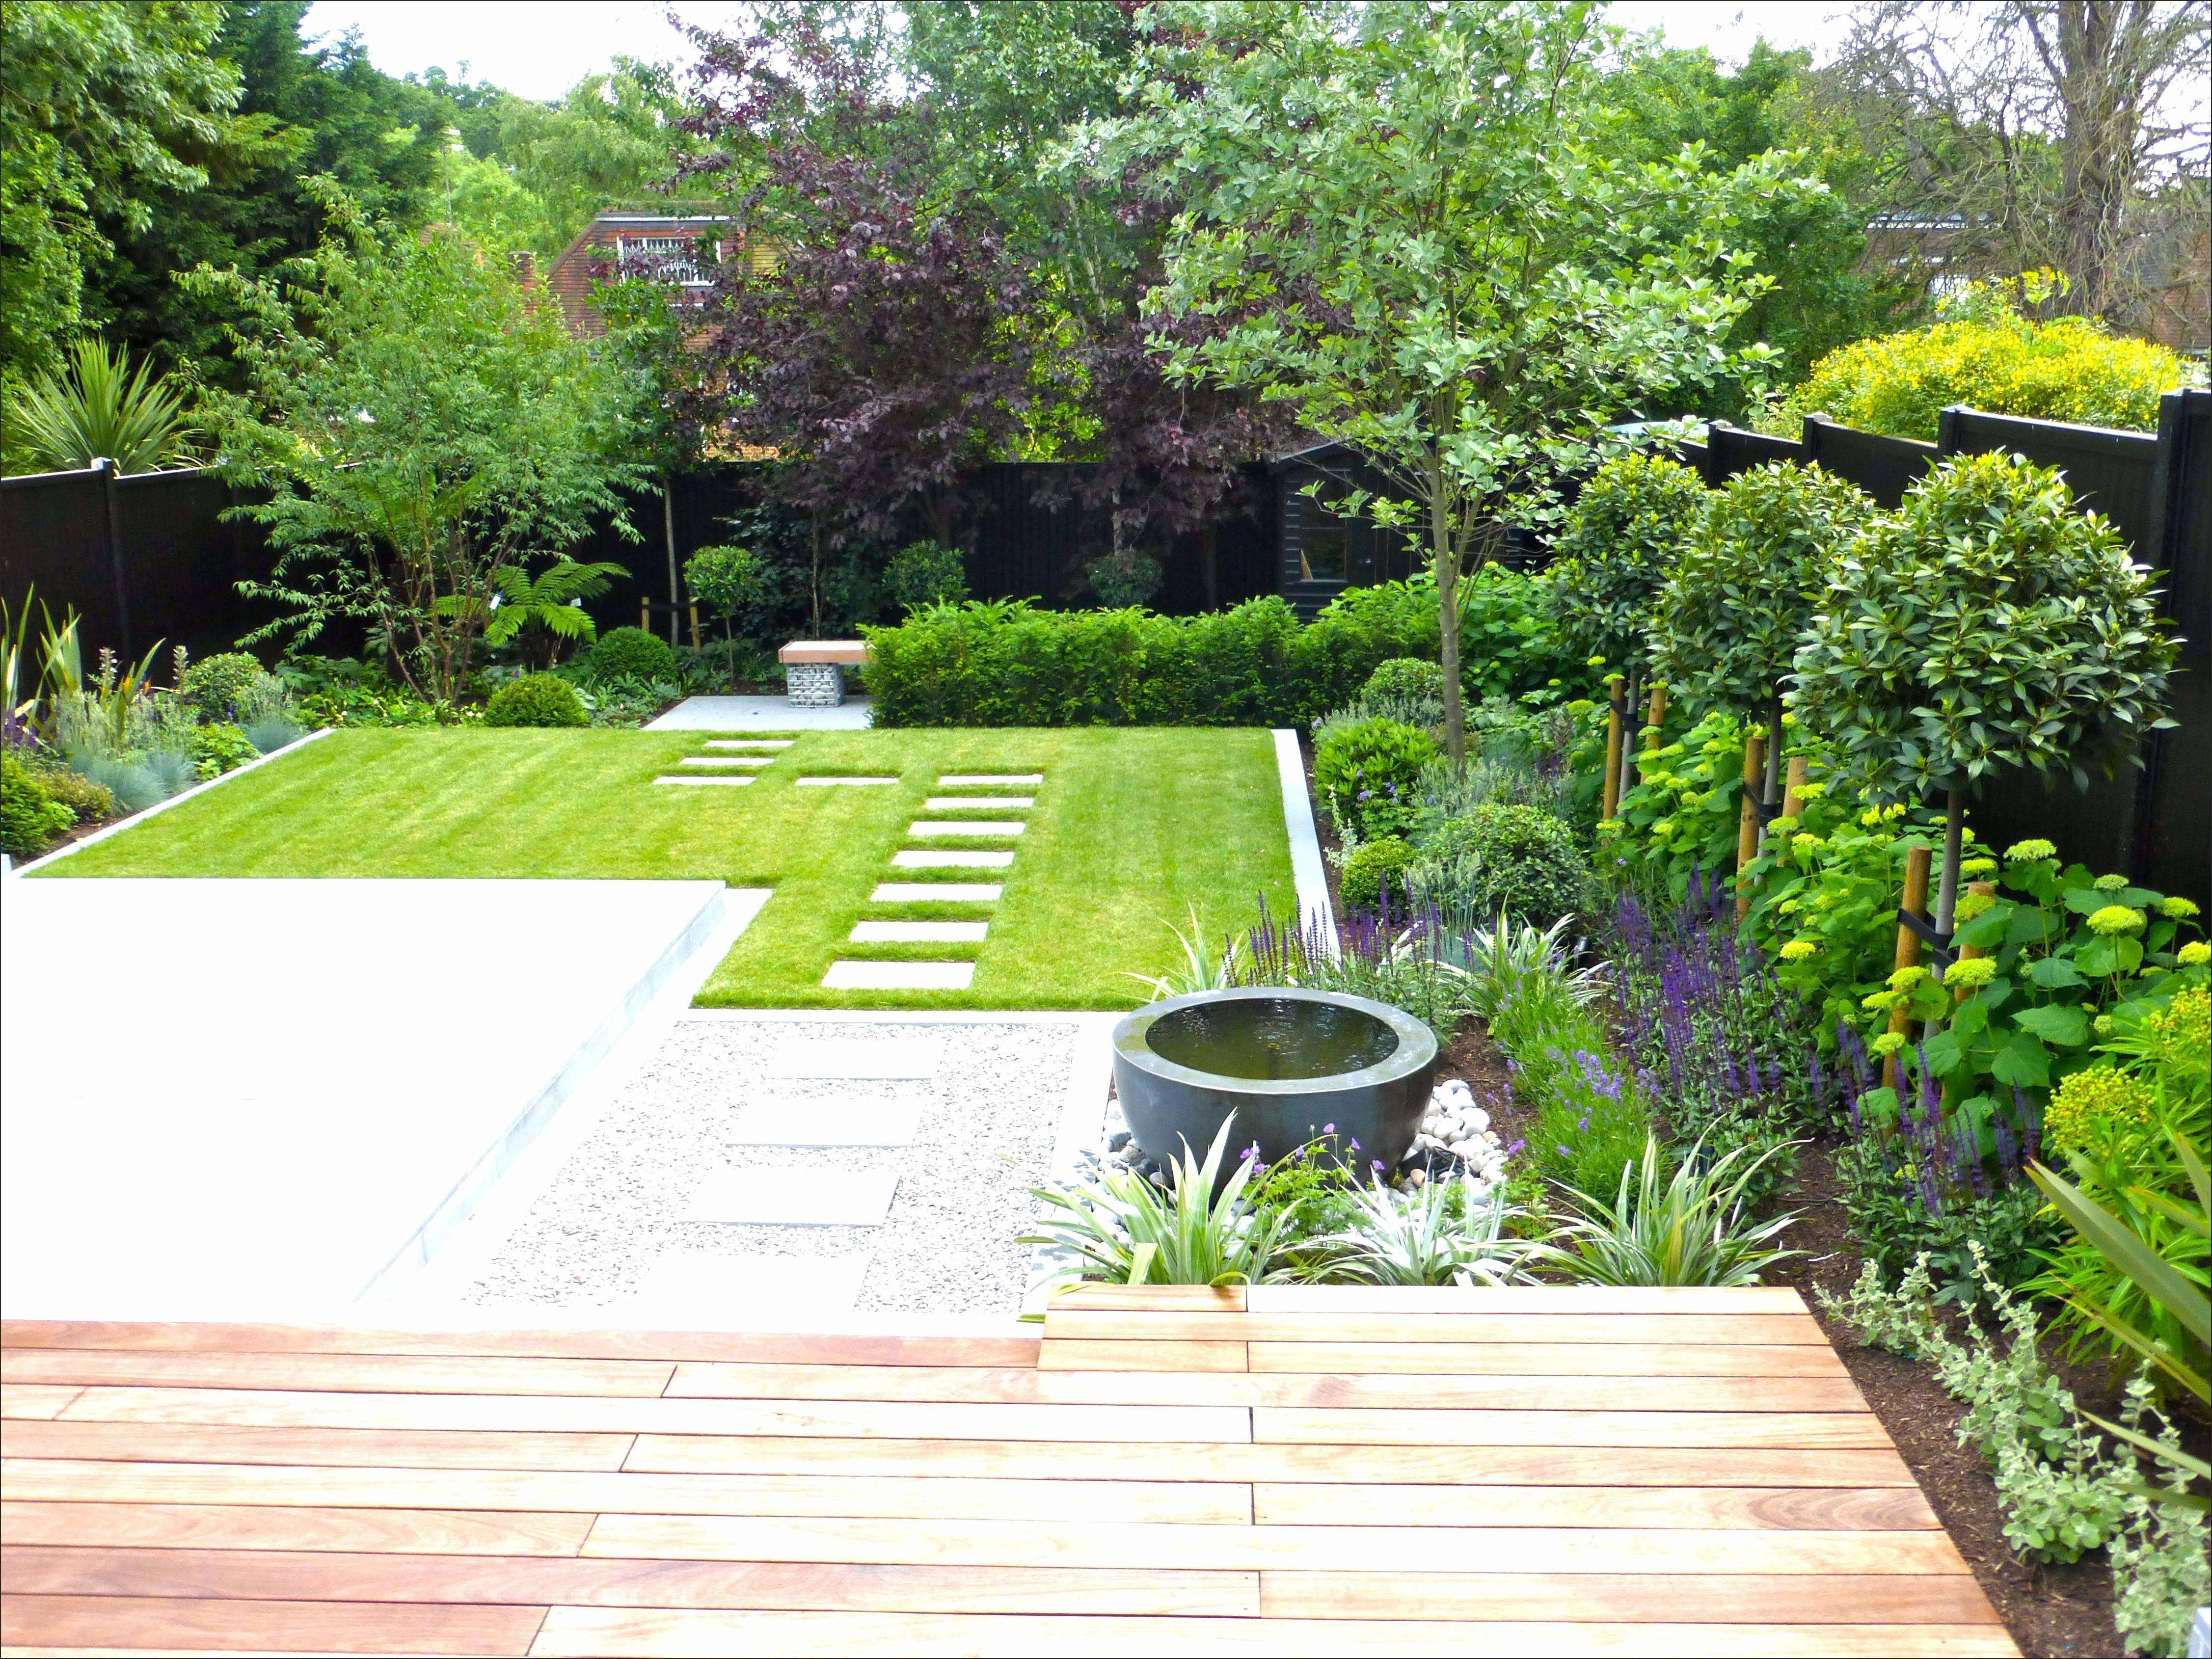 Diy Landscaping Ideas Nz Diy Landscaping Ideas Step Into The Dark inside 10 Clever Ideas How to Build Easy Landscaping Ideas For Backyard